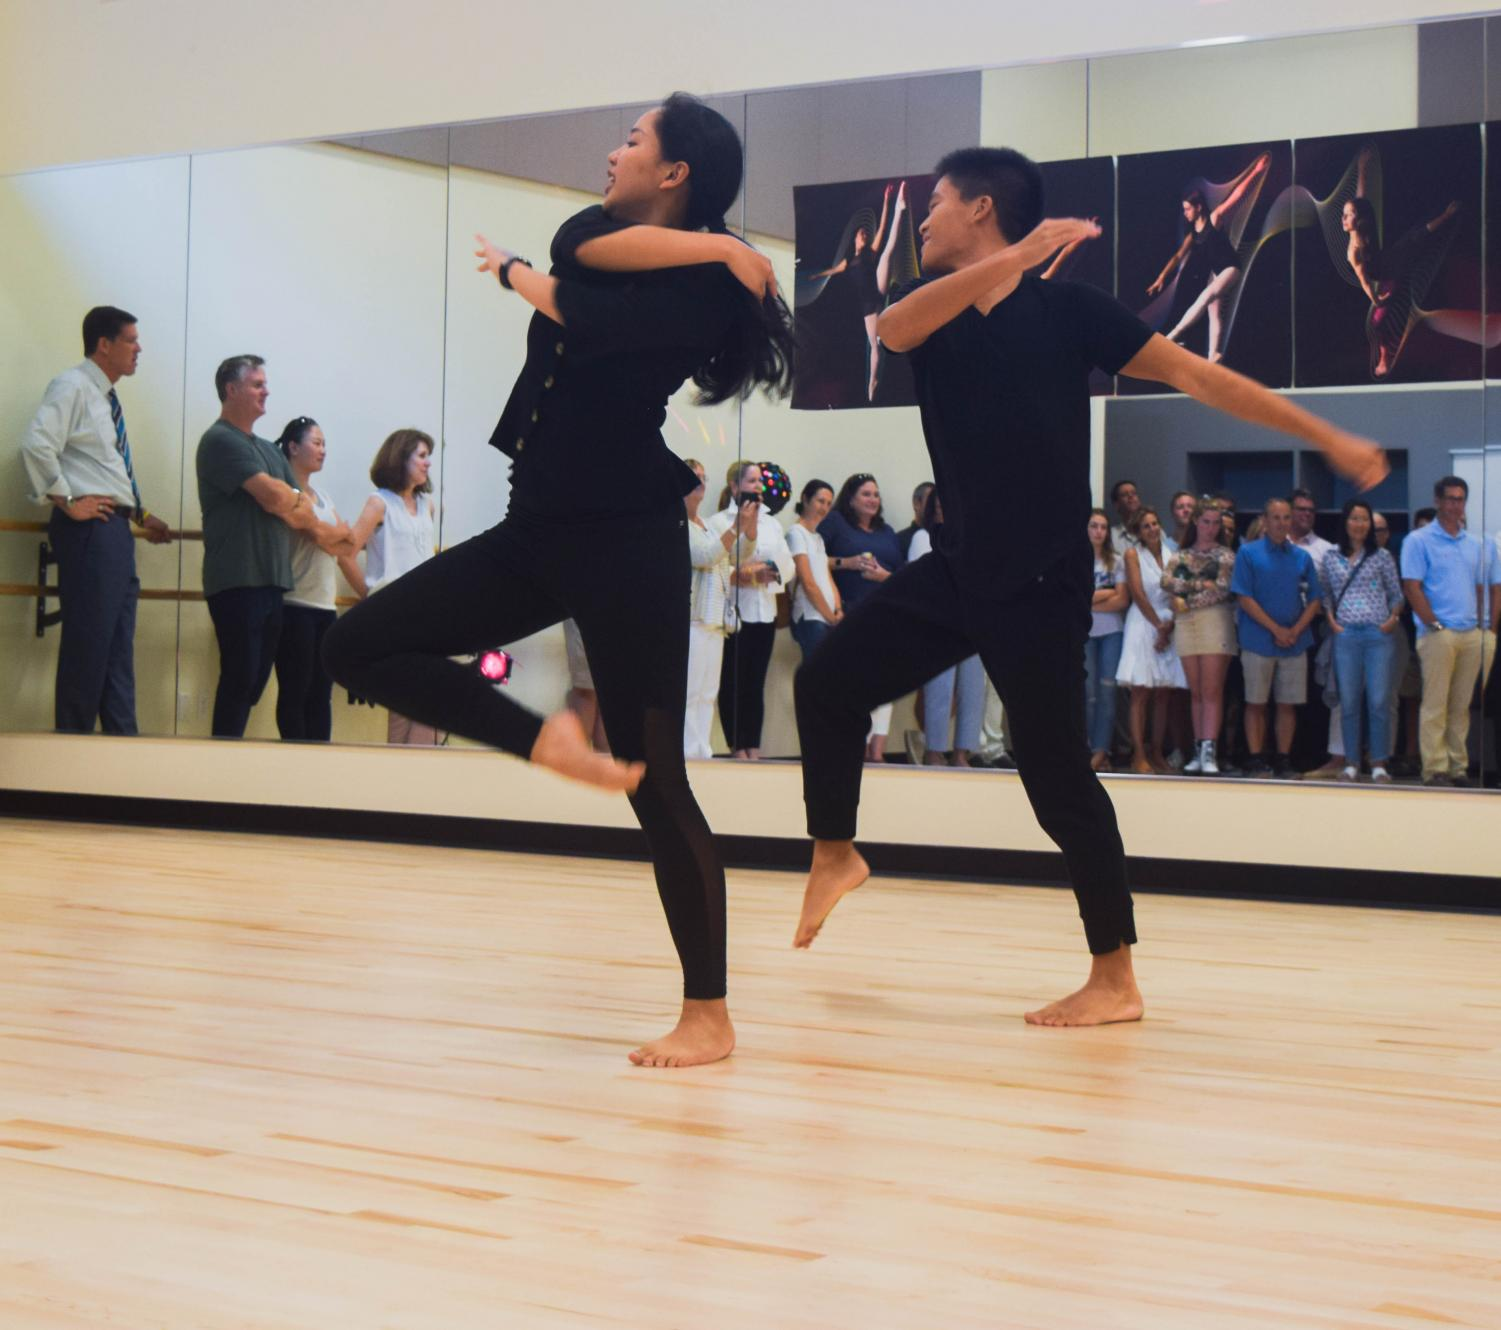 Seniors Victoria Wat and Joshua Lim perform a duet in the new dance room. Staff Photo: Bella Guel.